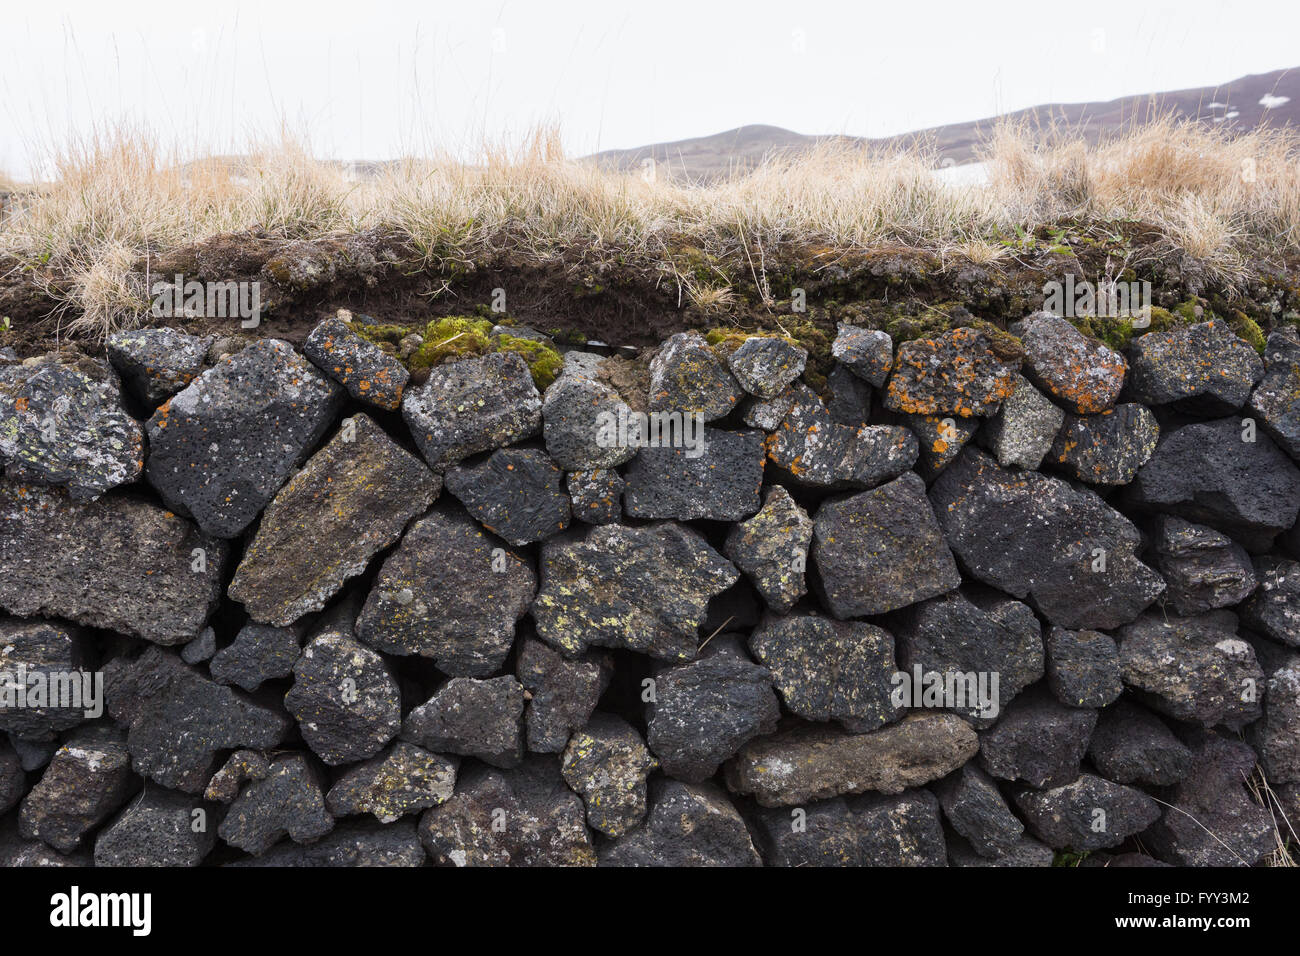 Basalt rock wall with turf and colourful moss in Iceland - Stock Image